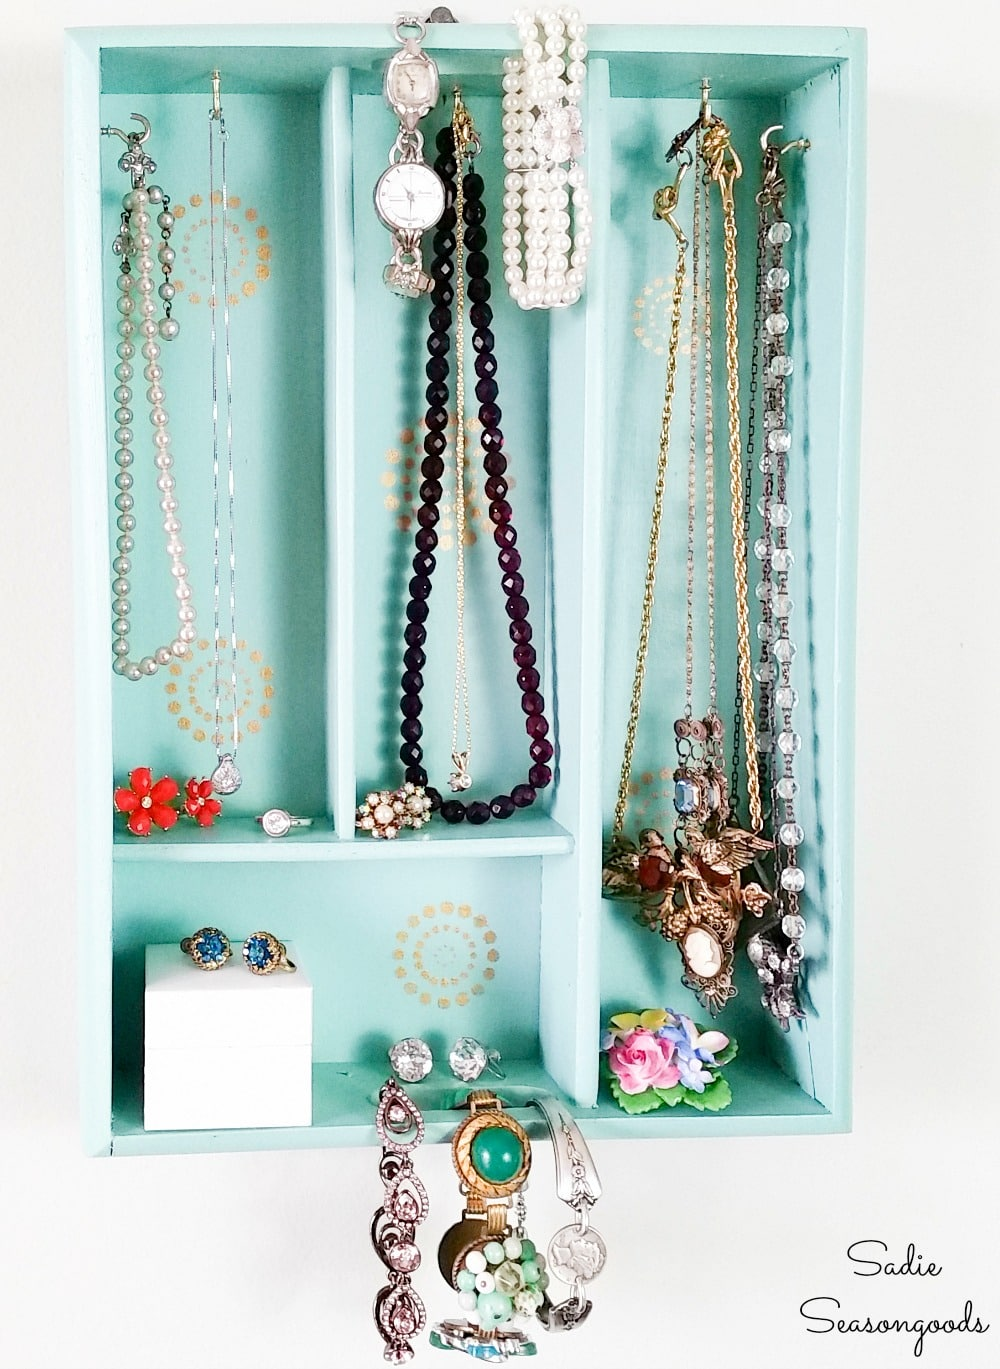 Boho Storage for Jewelry from a Silverware Tray